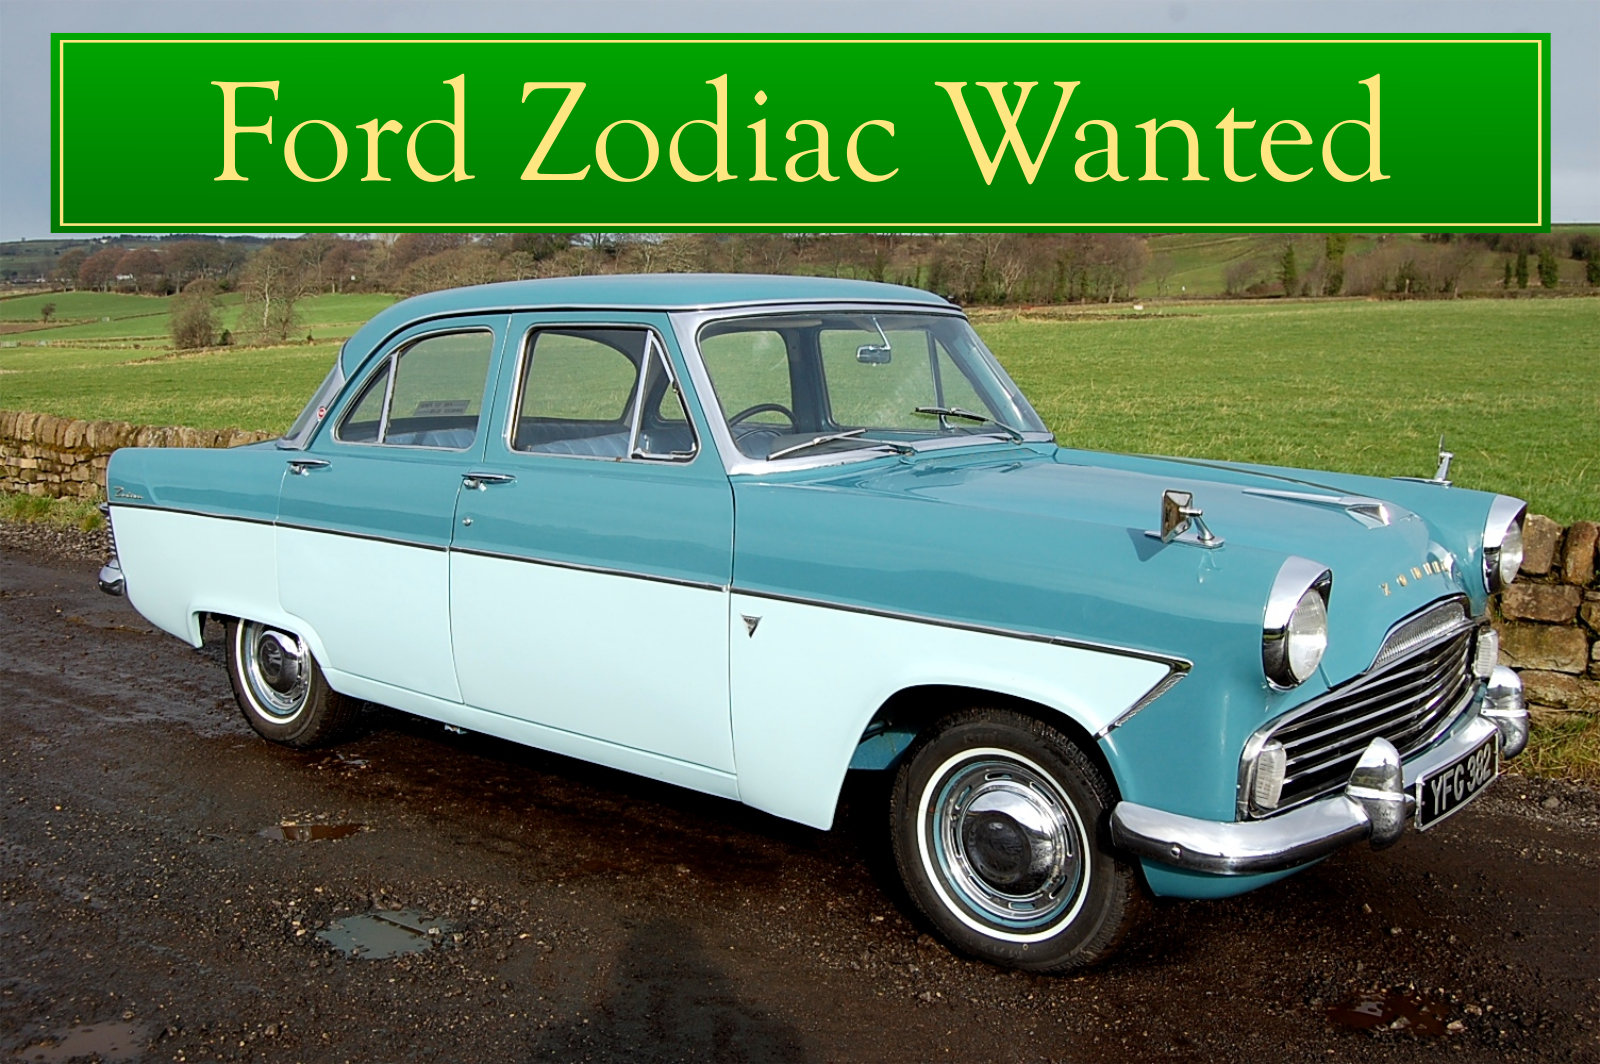 FORD ZODIAC MK3 WANTED, CLASSIC CARS WANTED, INSTANT PAYMENT Wanted (picture 2 of 6)